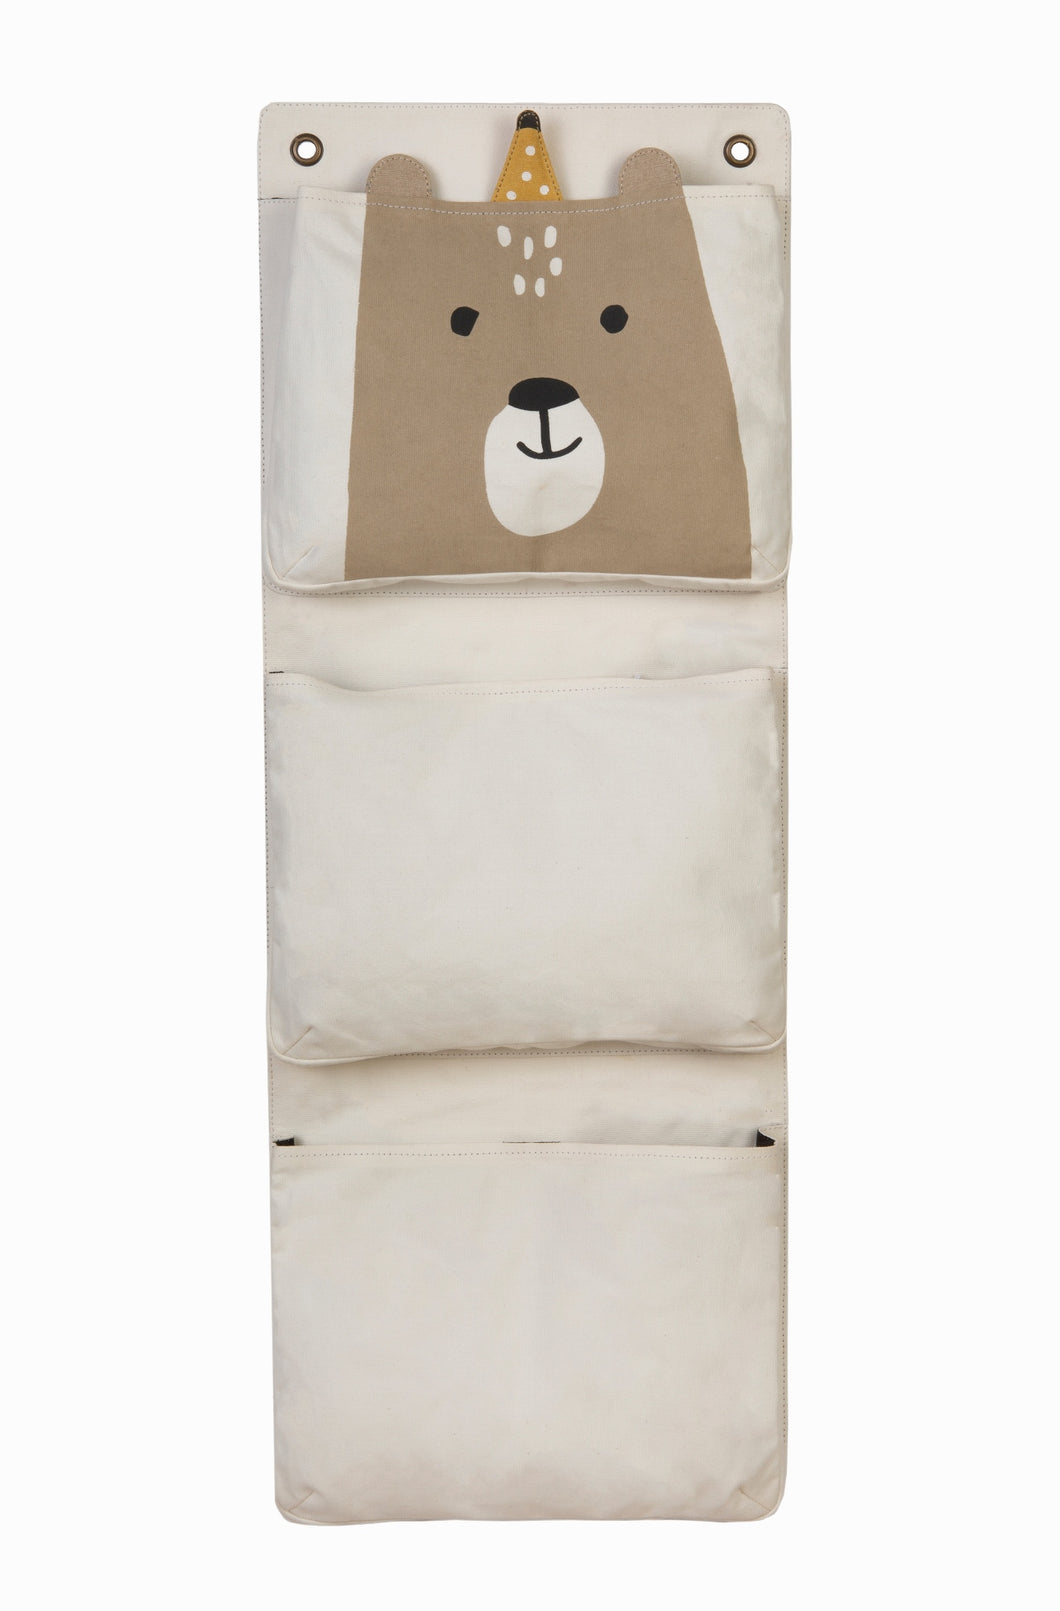 TEDDY BEAR HANGING ORGANIZER